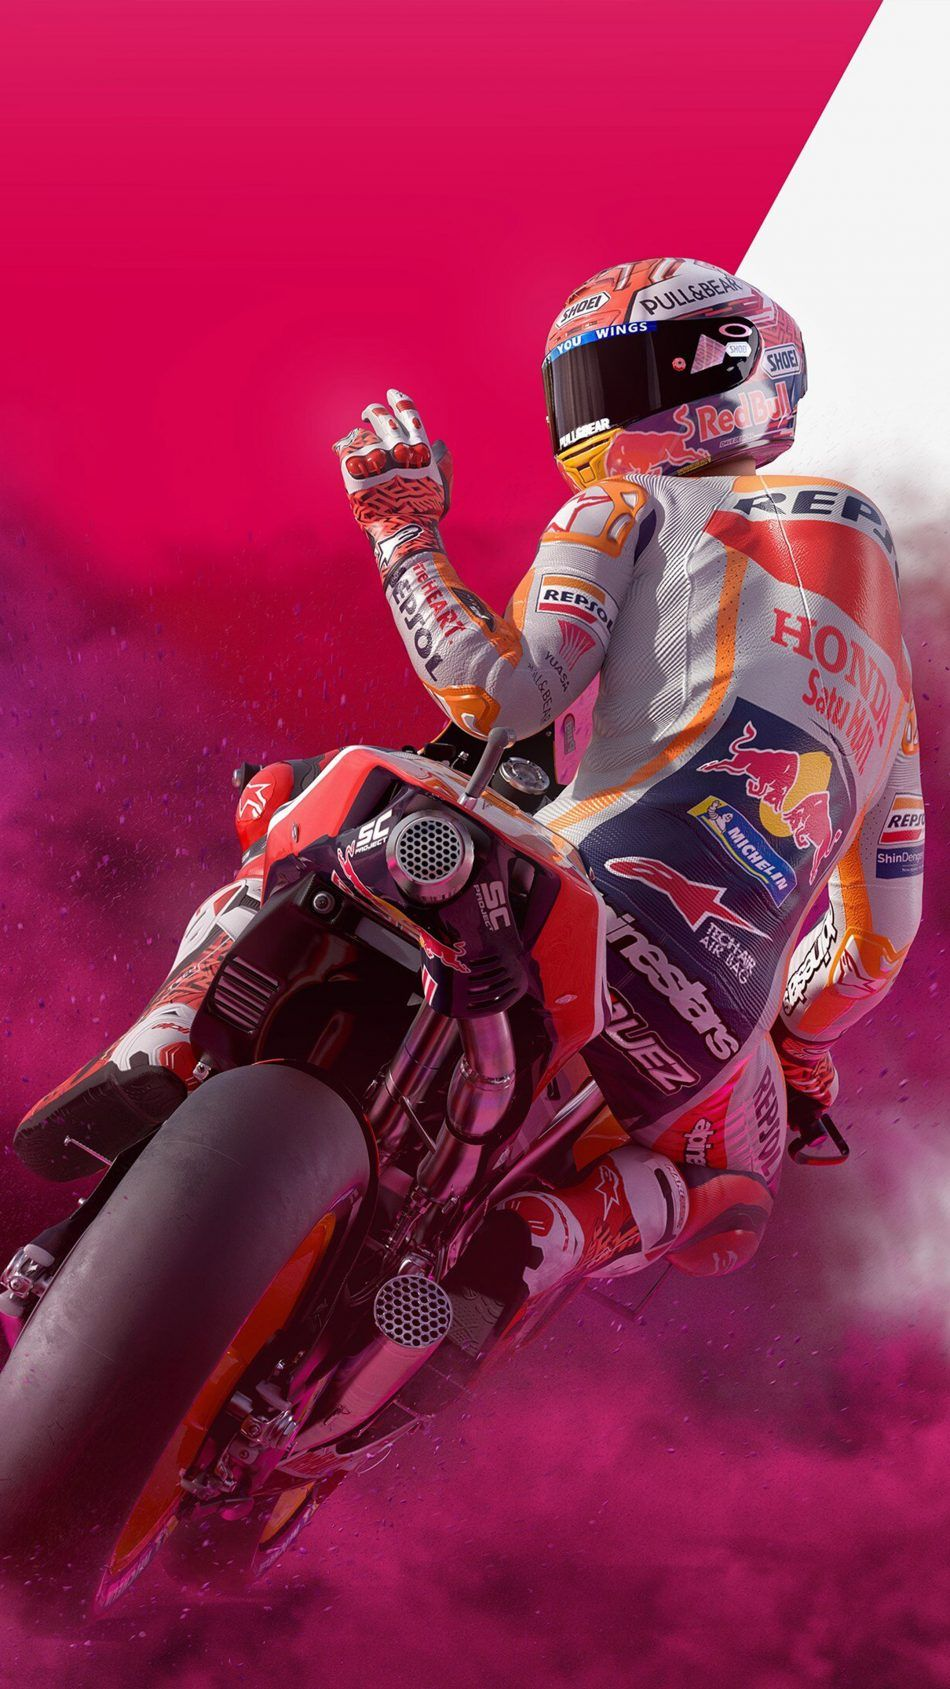 Motogp 19 Game Marc Marquez Motogp Mobile Wallpaper